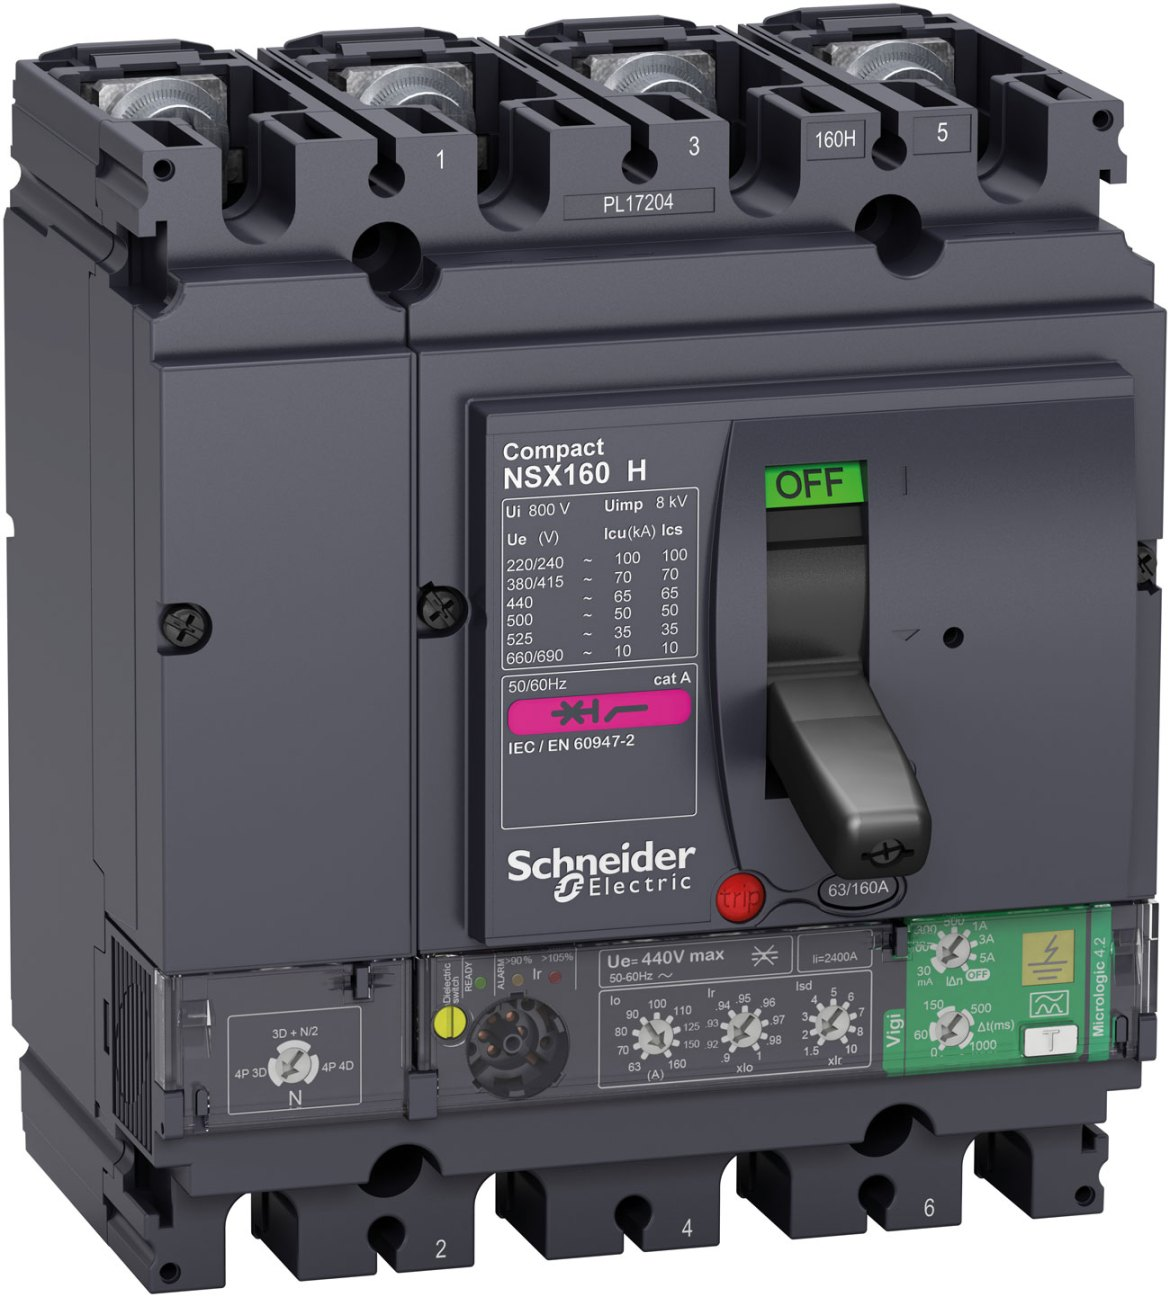 Compact NSX160 H circuit breaker, combining intelligent metering and monitoring with protective functions.